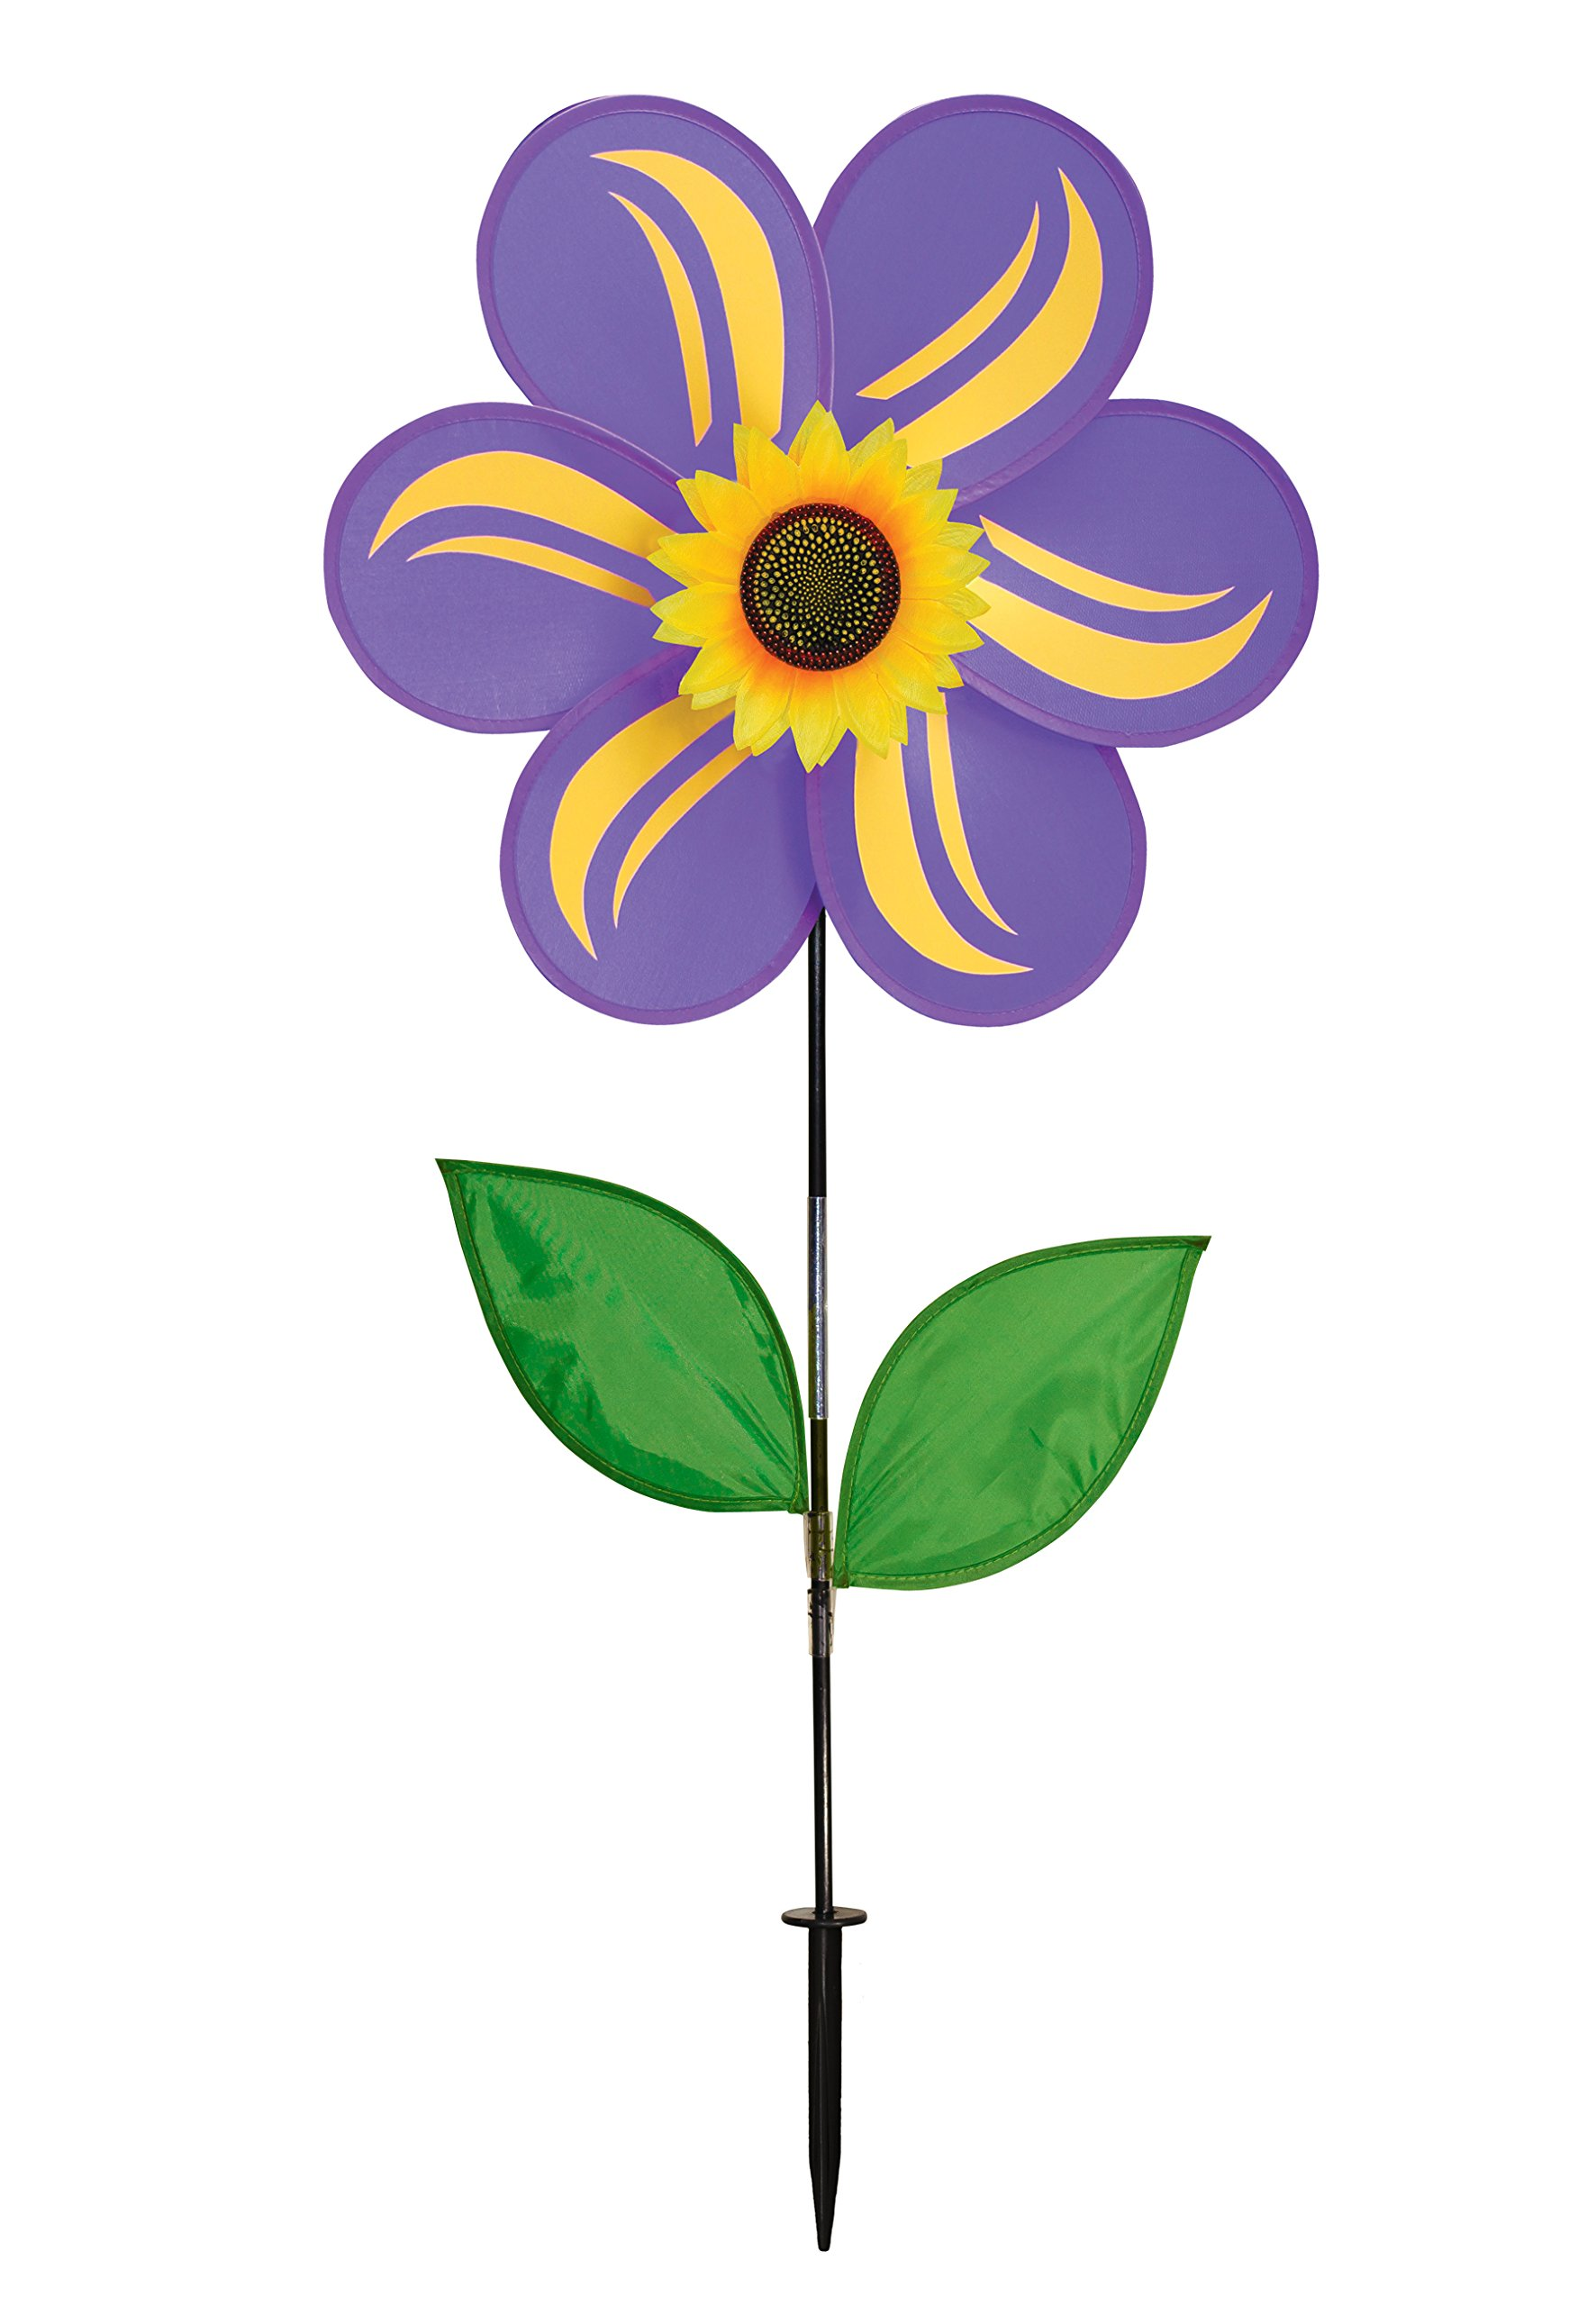 In the Breeze 19 Inch Purple Sunflower Wind Spinner with Leaves - Includes Ground Stake - Colorful Flower for your Yard and Garden